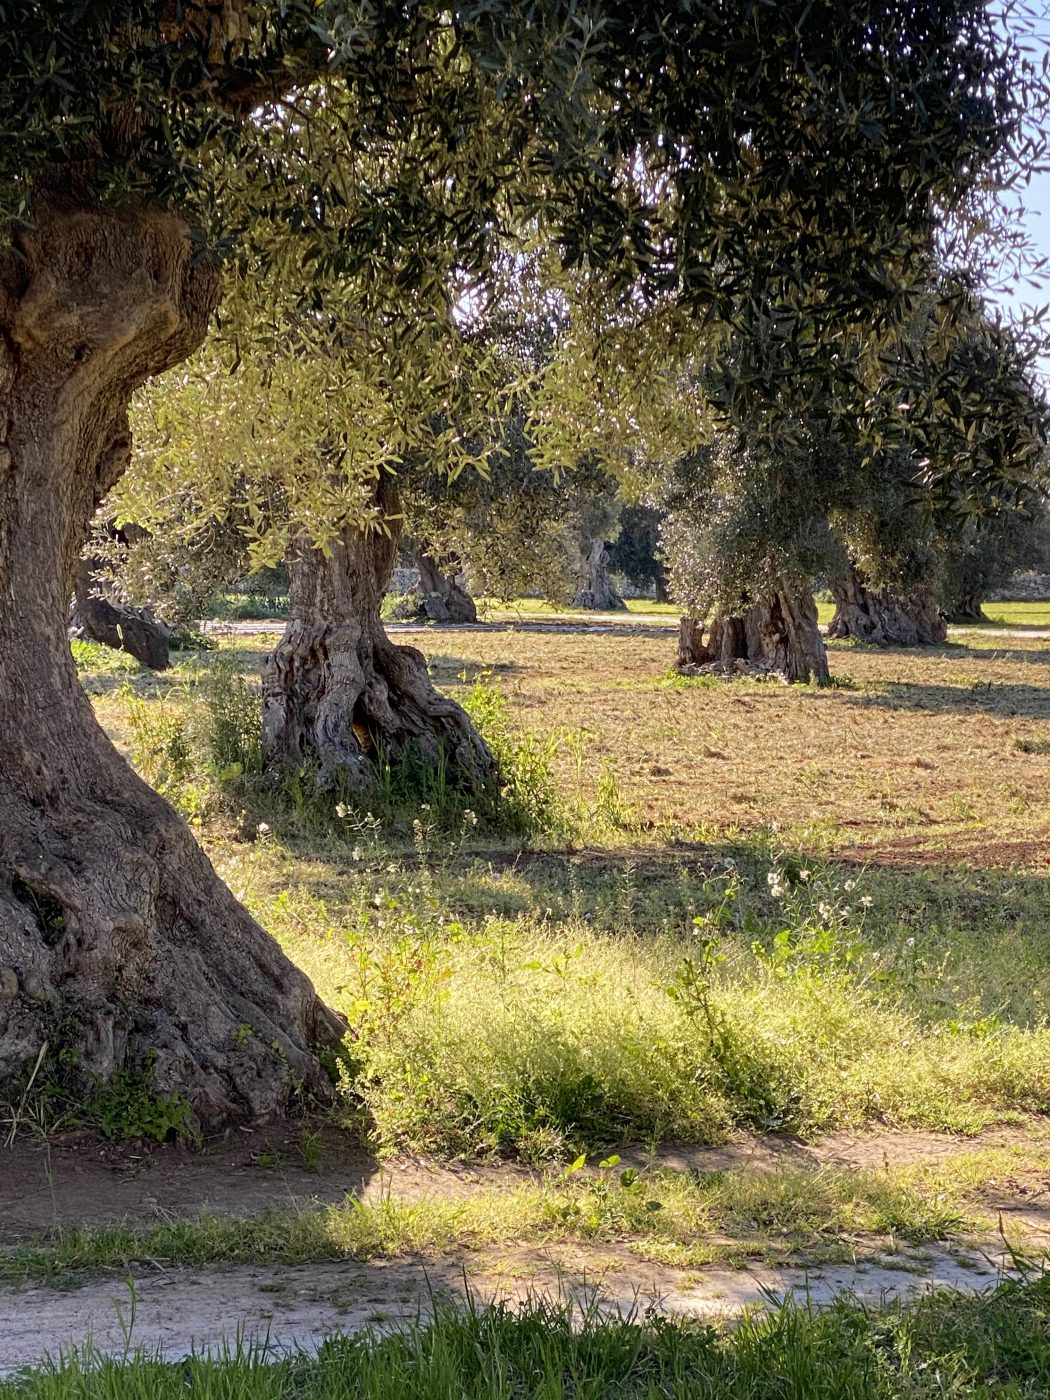 Puglia - A region of farmers, of traditions, of passion, of simplicity.